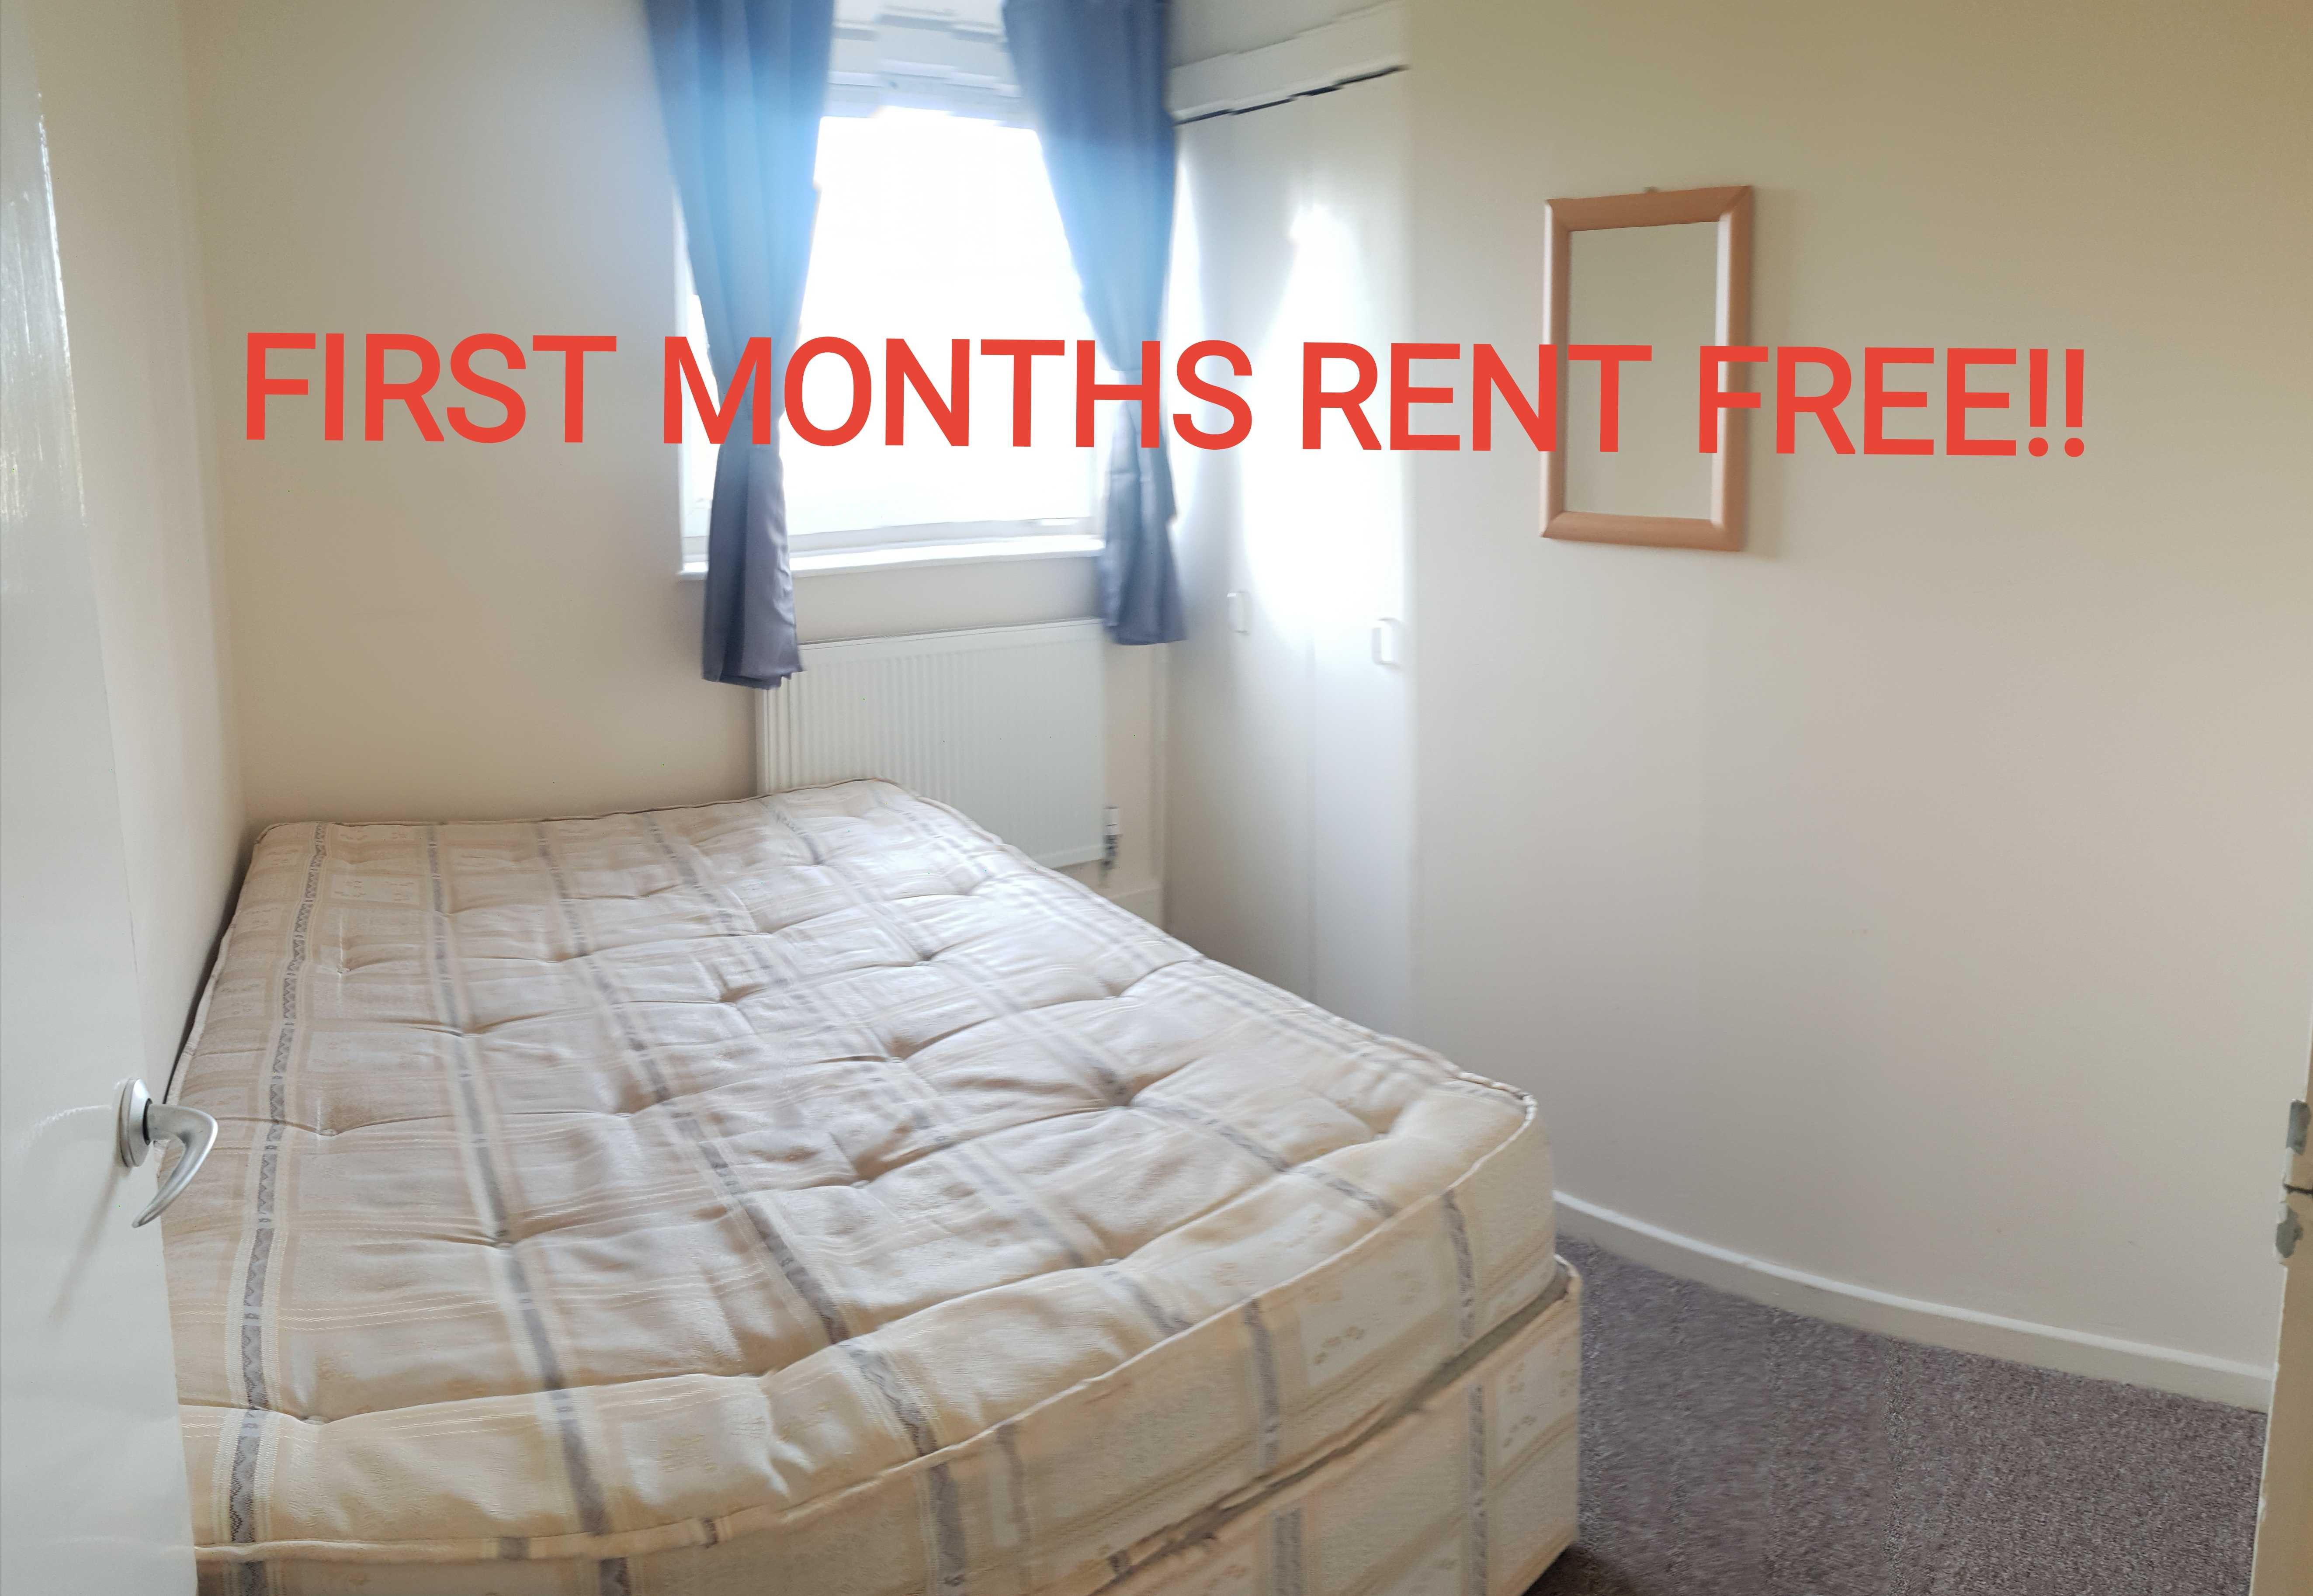 1 room in Mortlake and Barnes Common, London, SW15 5LE RoomsLocal image